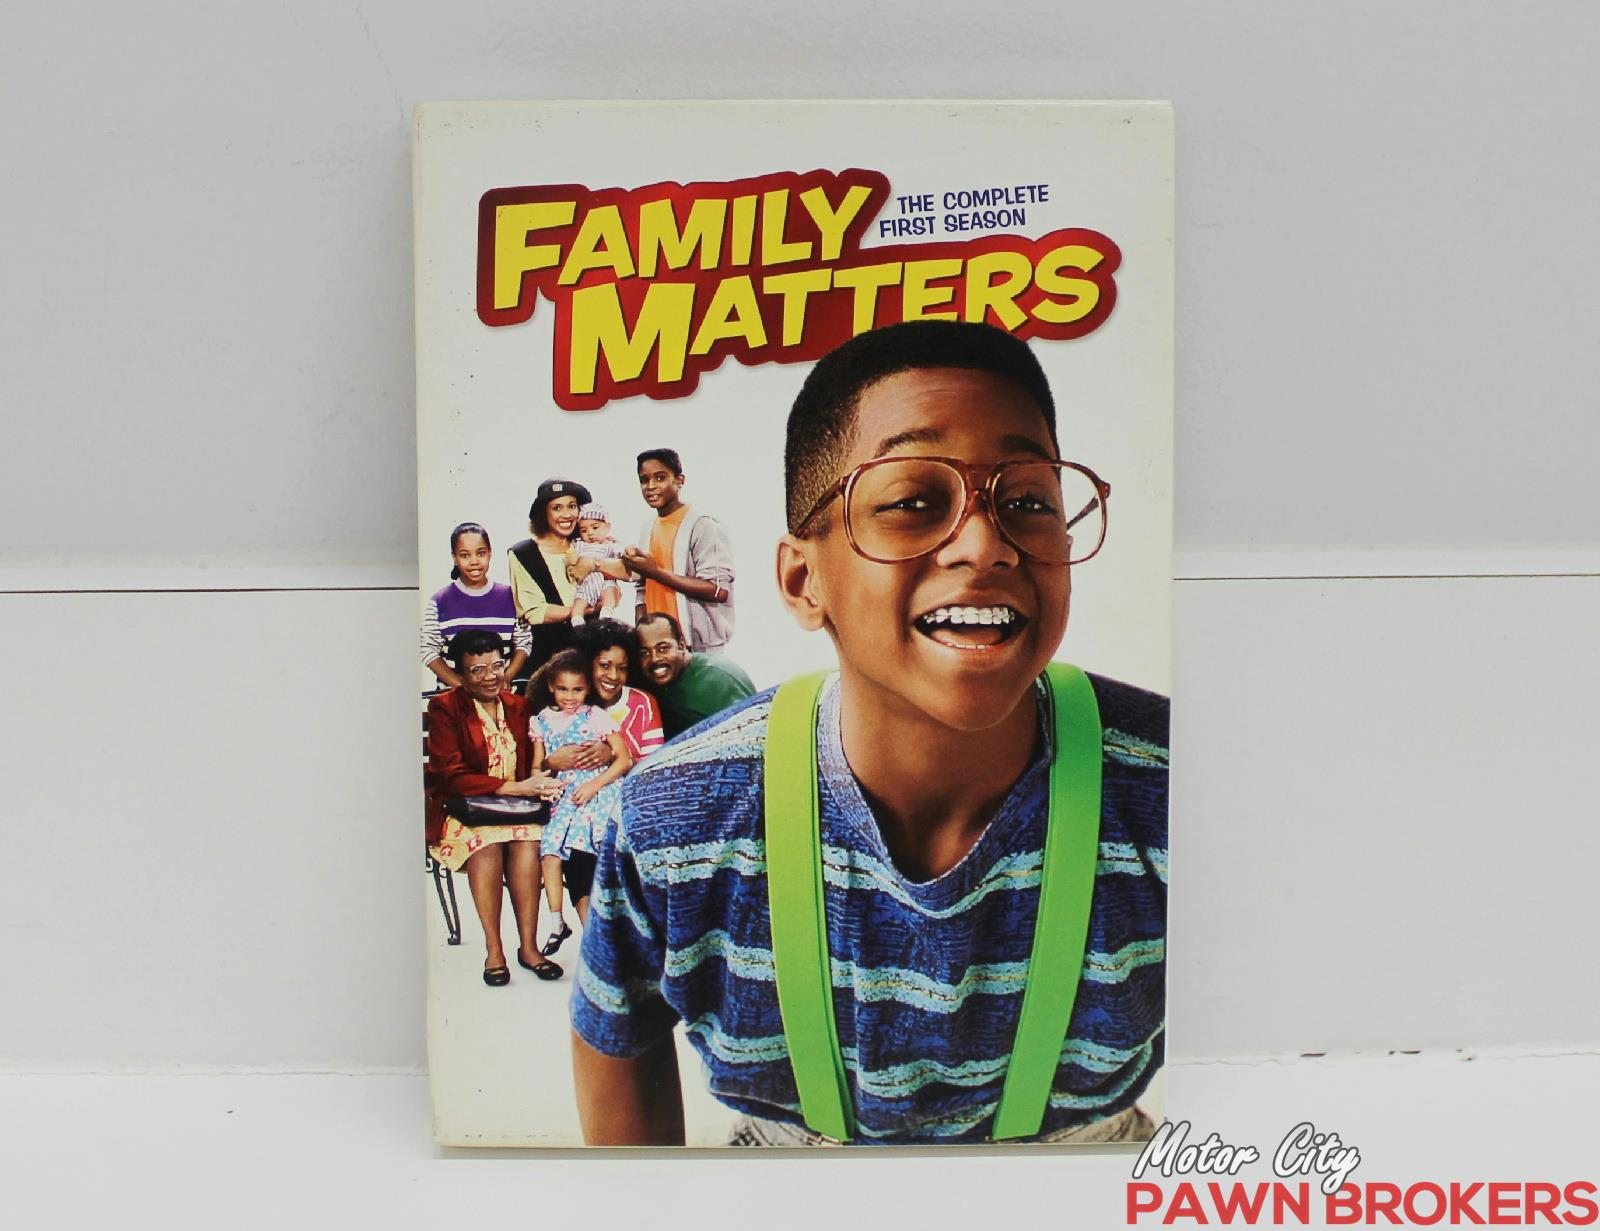 Family matters the complete first season dvd 2010 3 disc for Motor city pawn shop